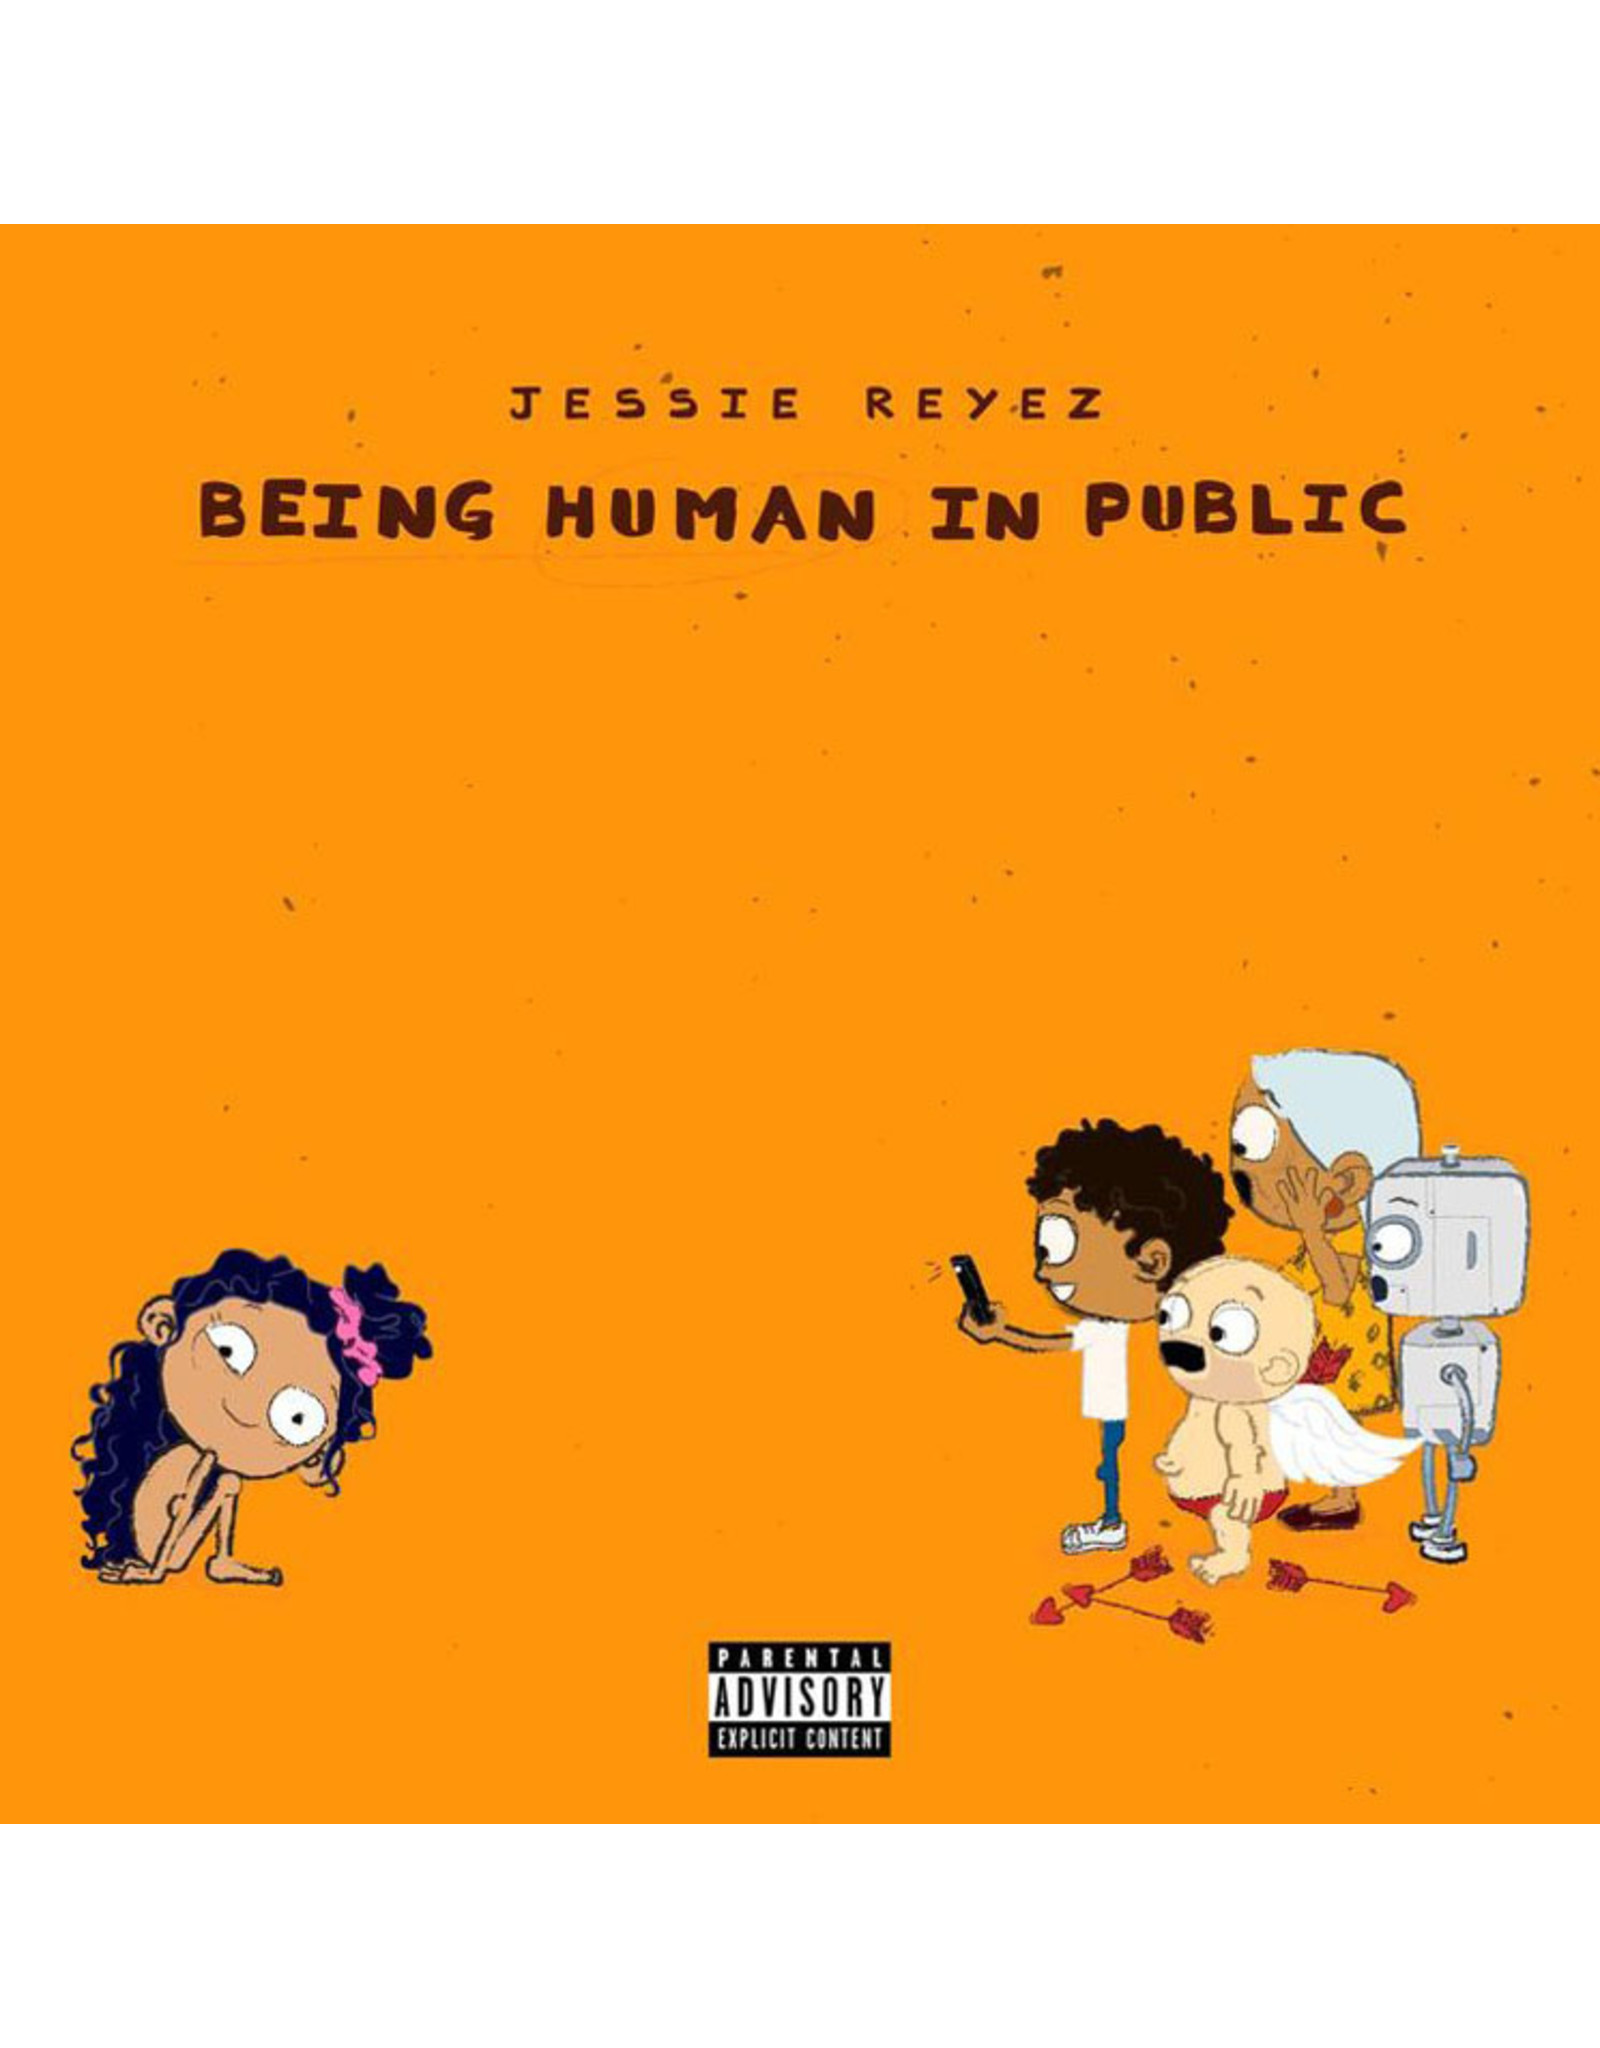 Jessie Reyez - Being Human In Public EP / Kiddo EP